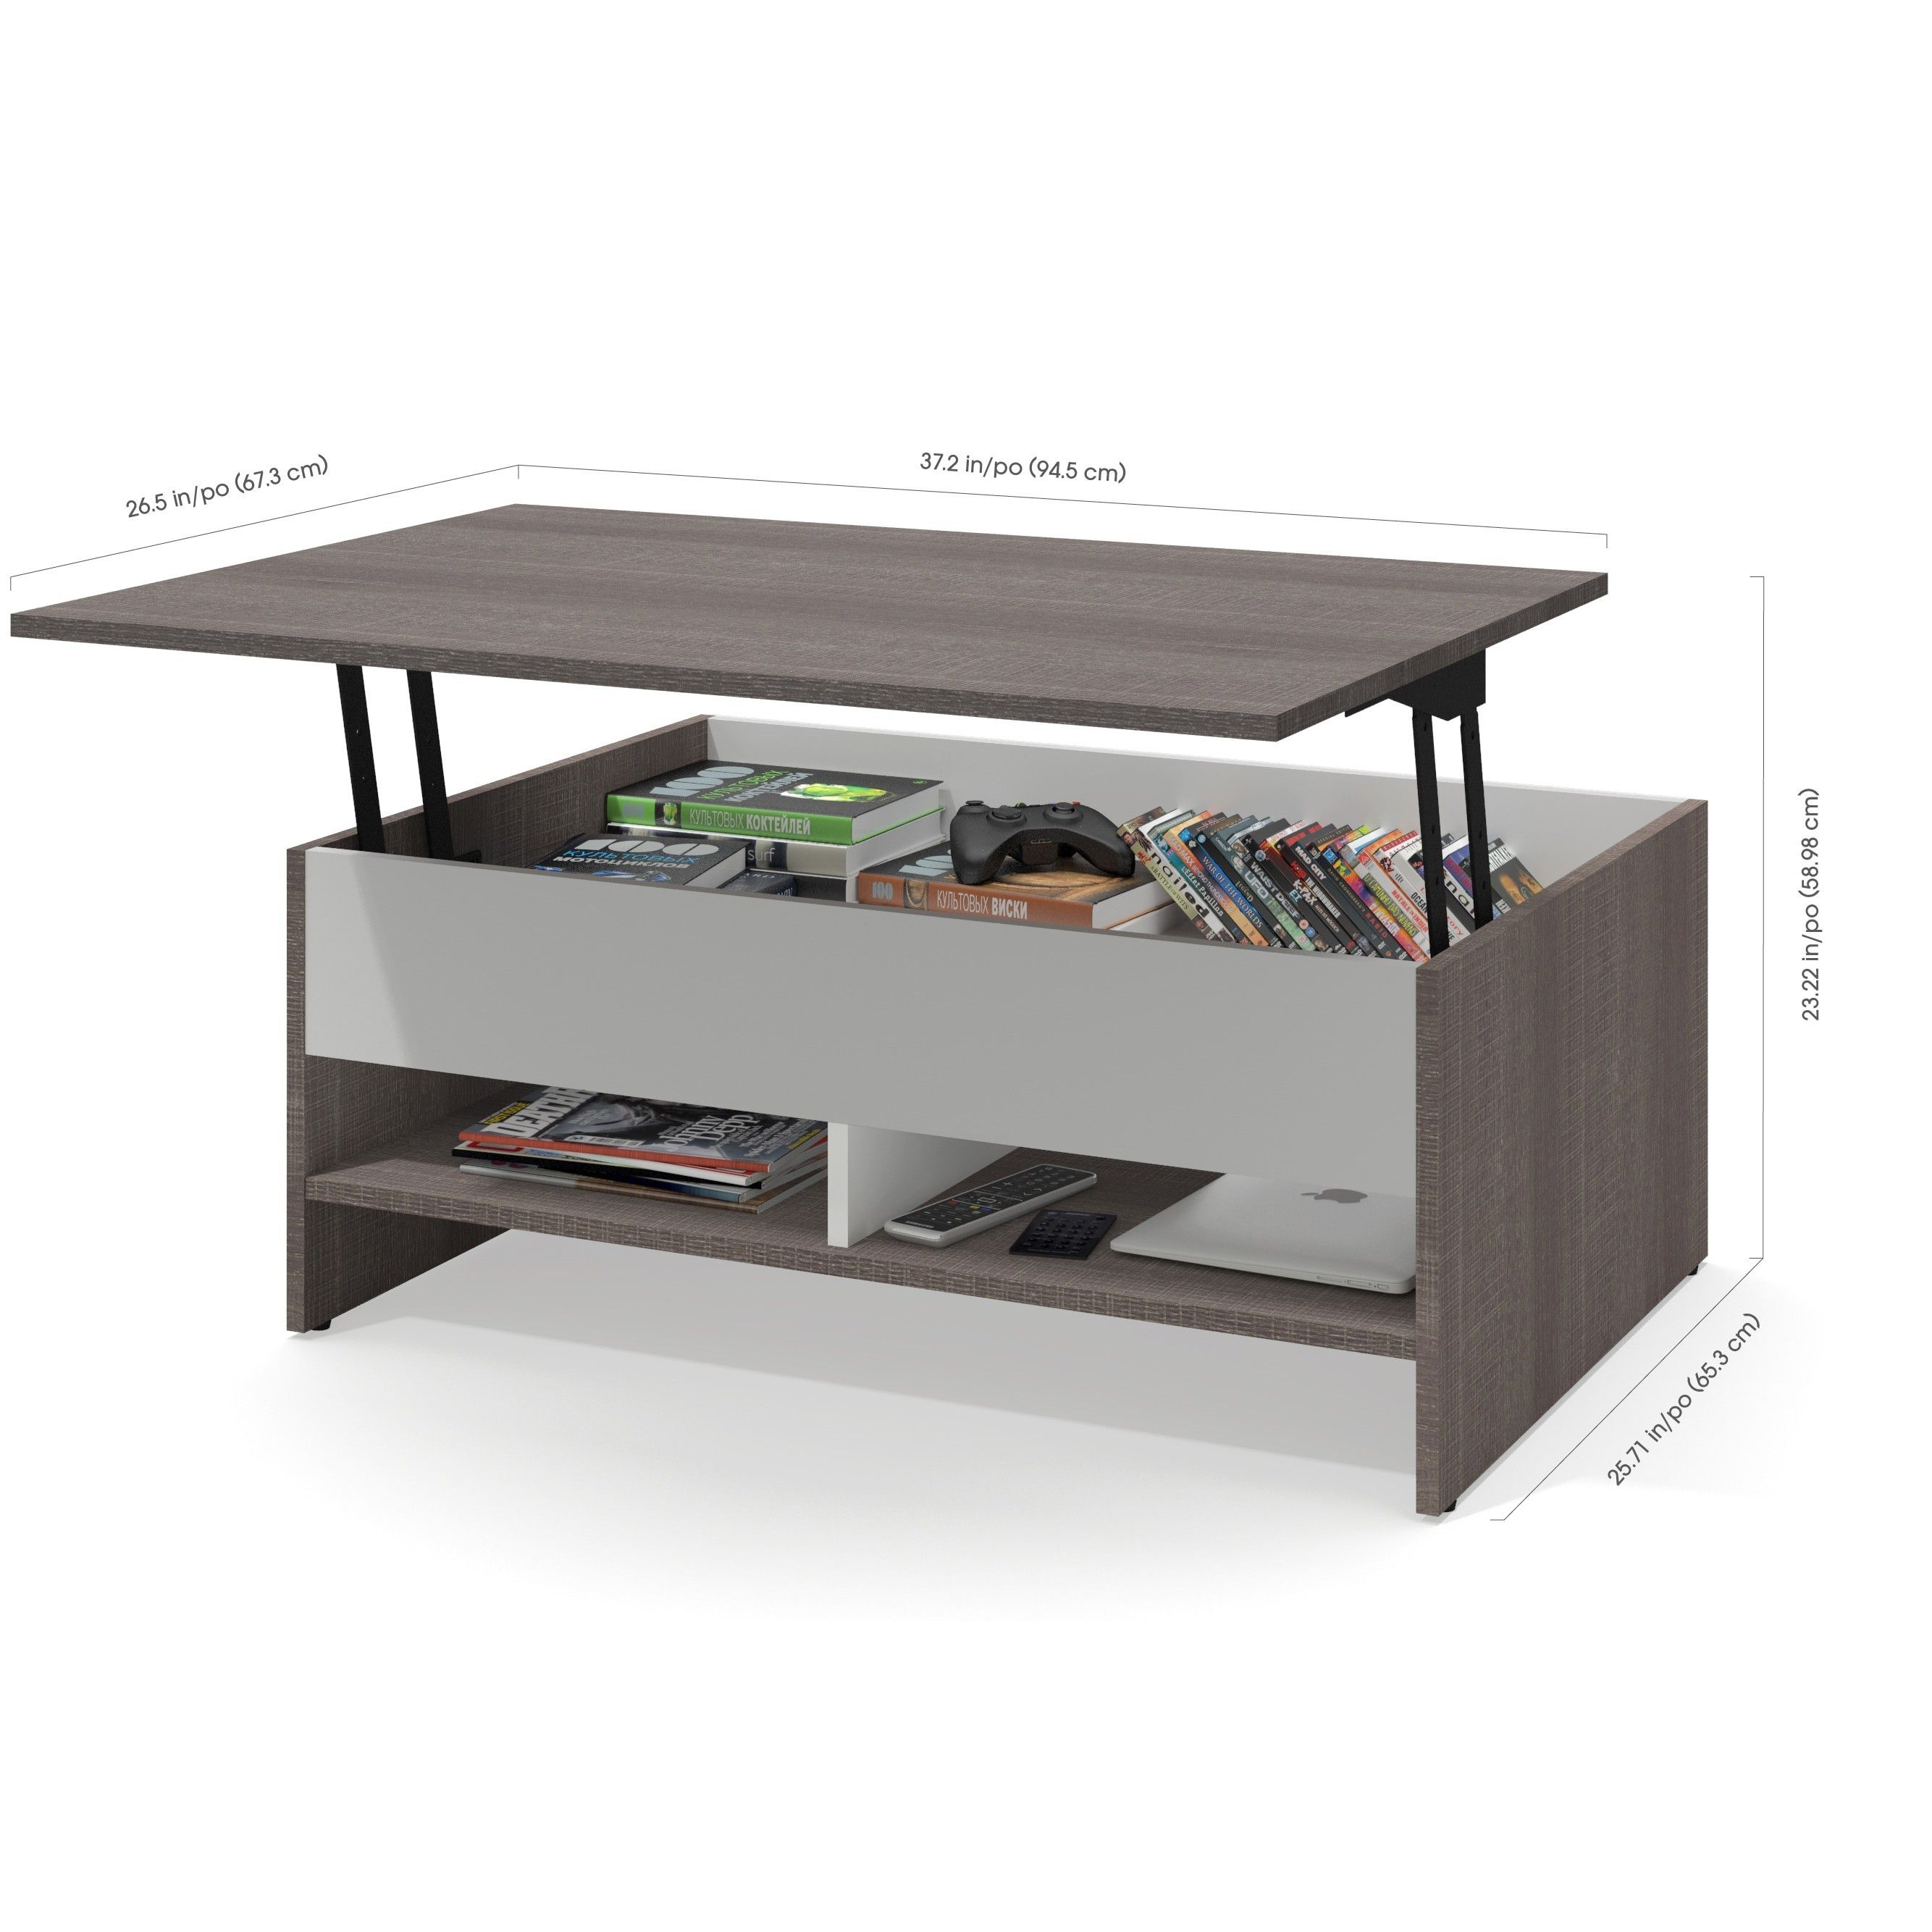 Square Lift Top Coffee Table Download Home Goods Coffee Tables Inspirational Home Goods Desk Meja Kopi Mebel